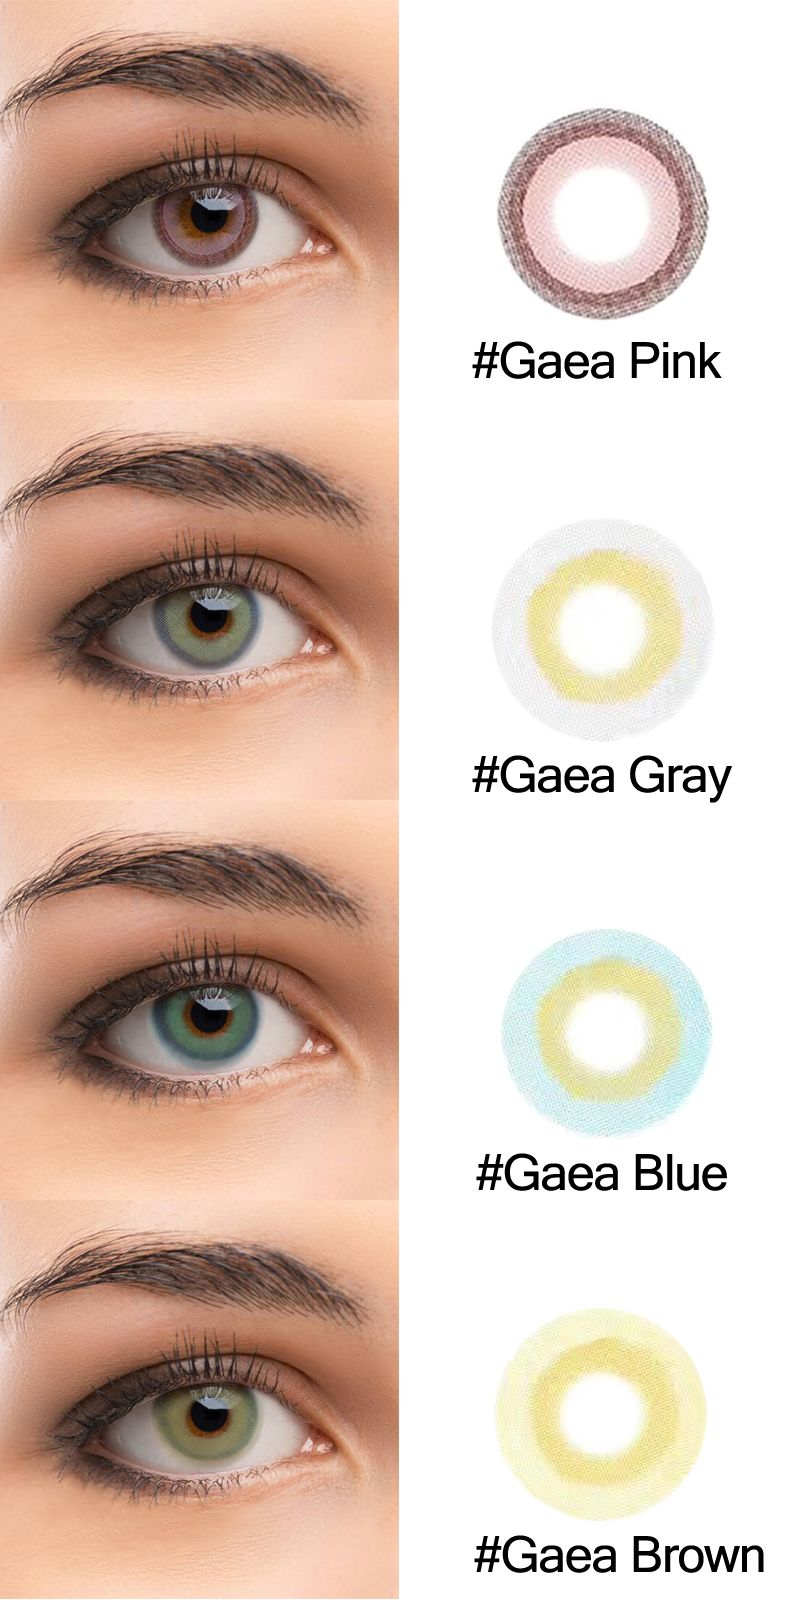 New brand colored lenses tolytolly gaea series has four 4 colors new brand colored lenses tolytolly gaea series has four 4 colors pink gray nvjuhfo Images